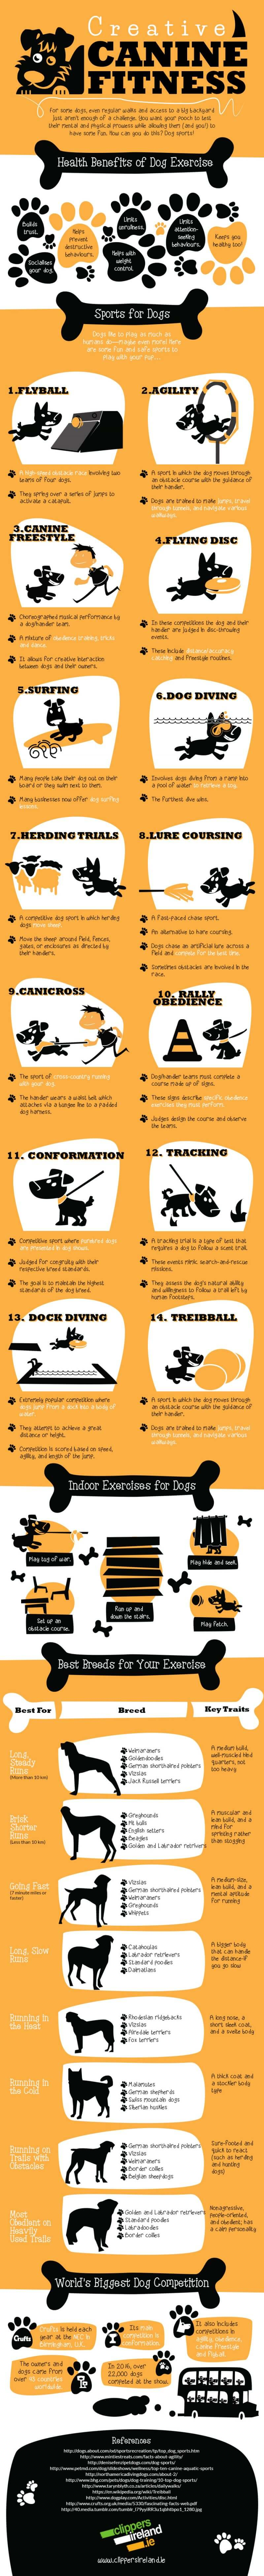 Workout Ideas for Dogs